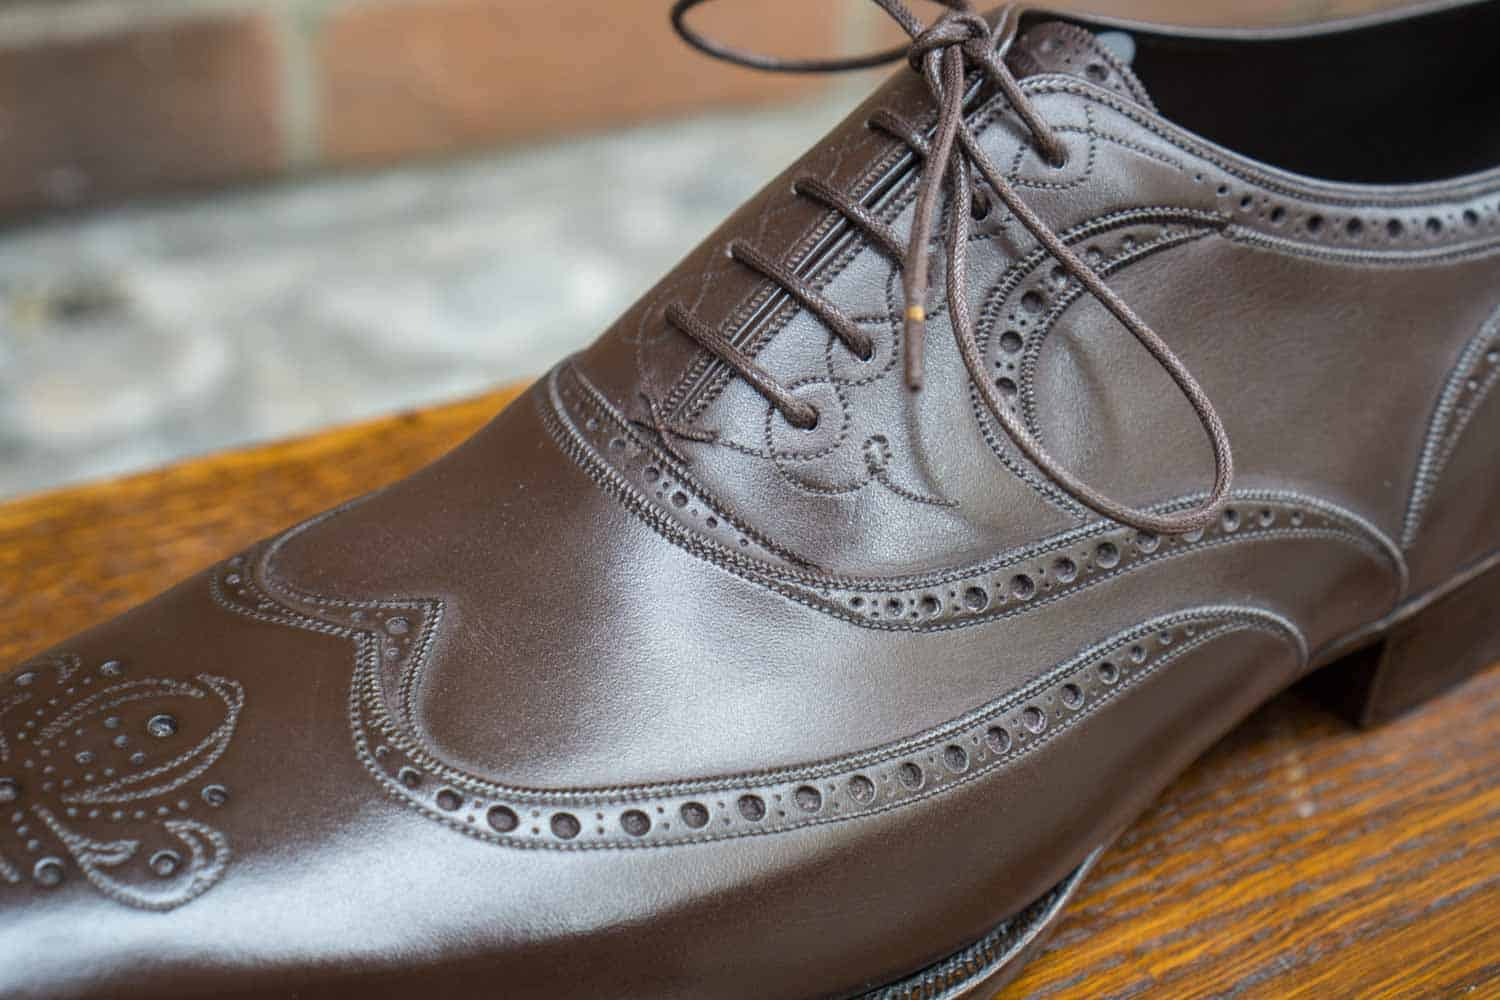 World Championships in Shoemaking 2019 - The Competition Shoes Part 1